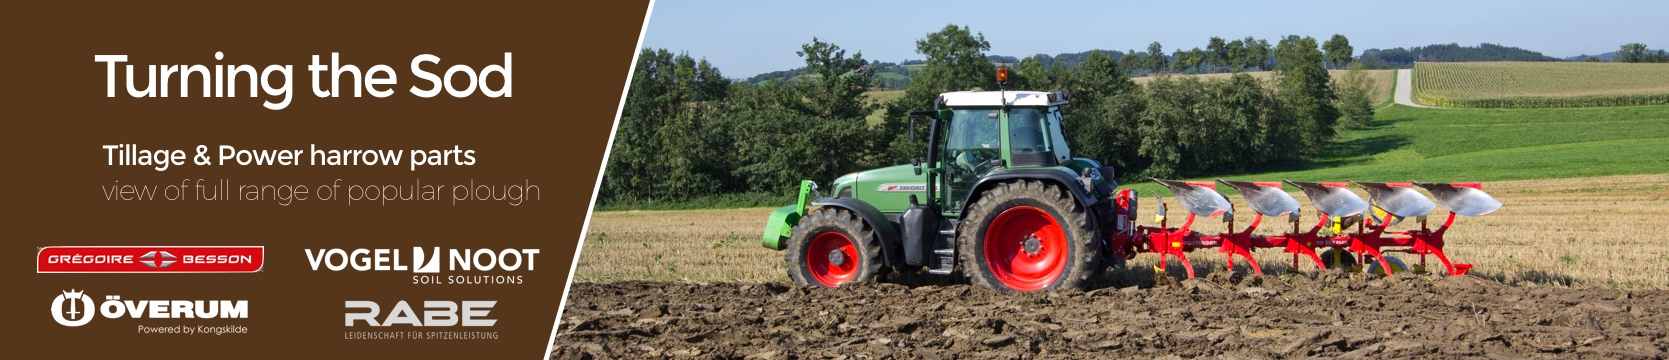 Plough Parts - tillage and power harrow parts